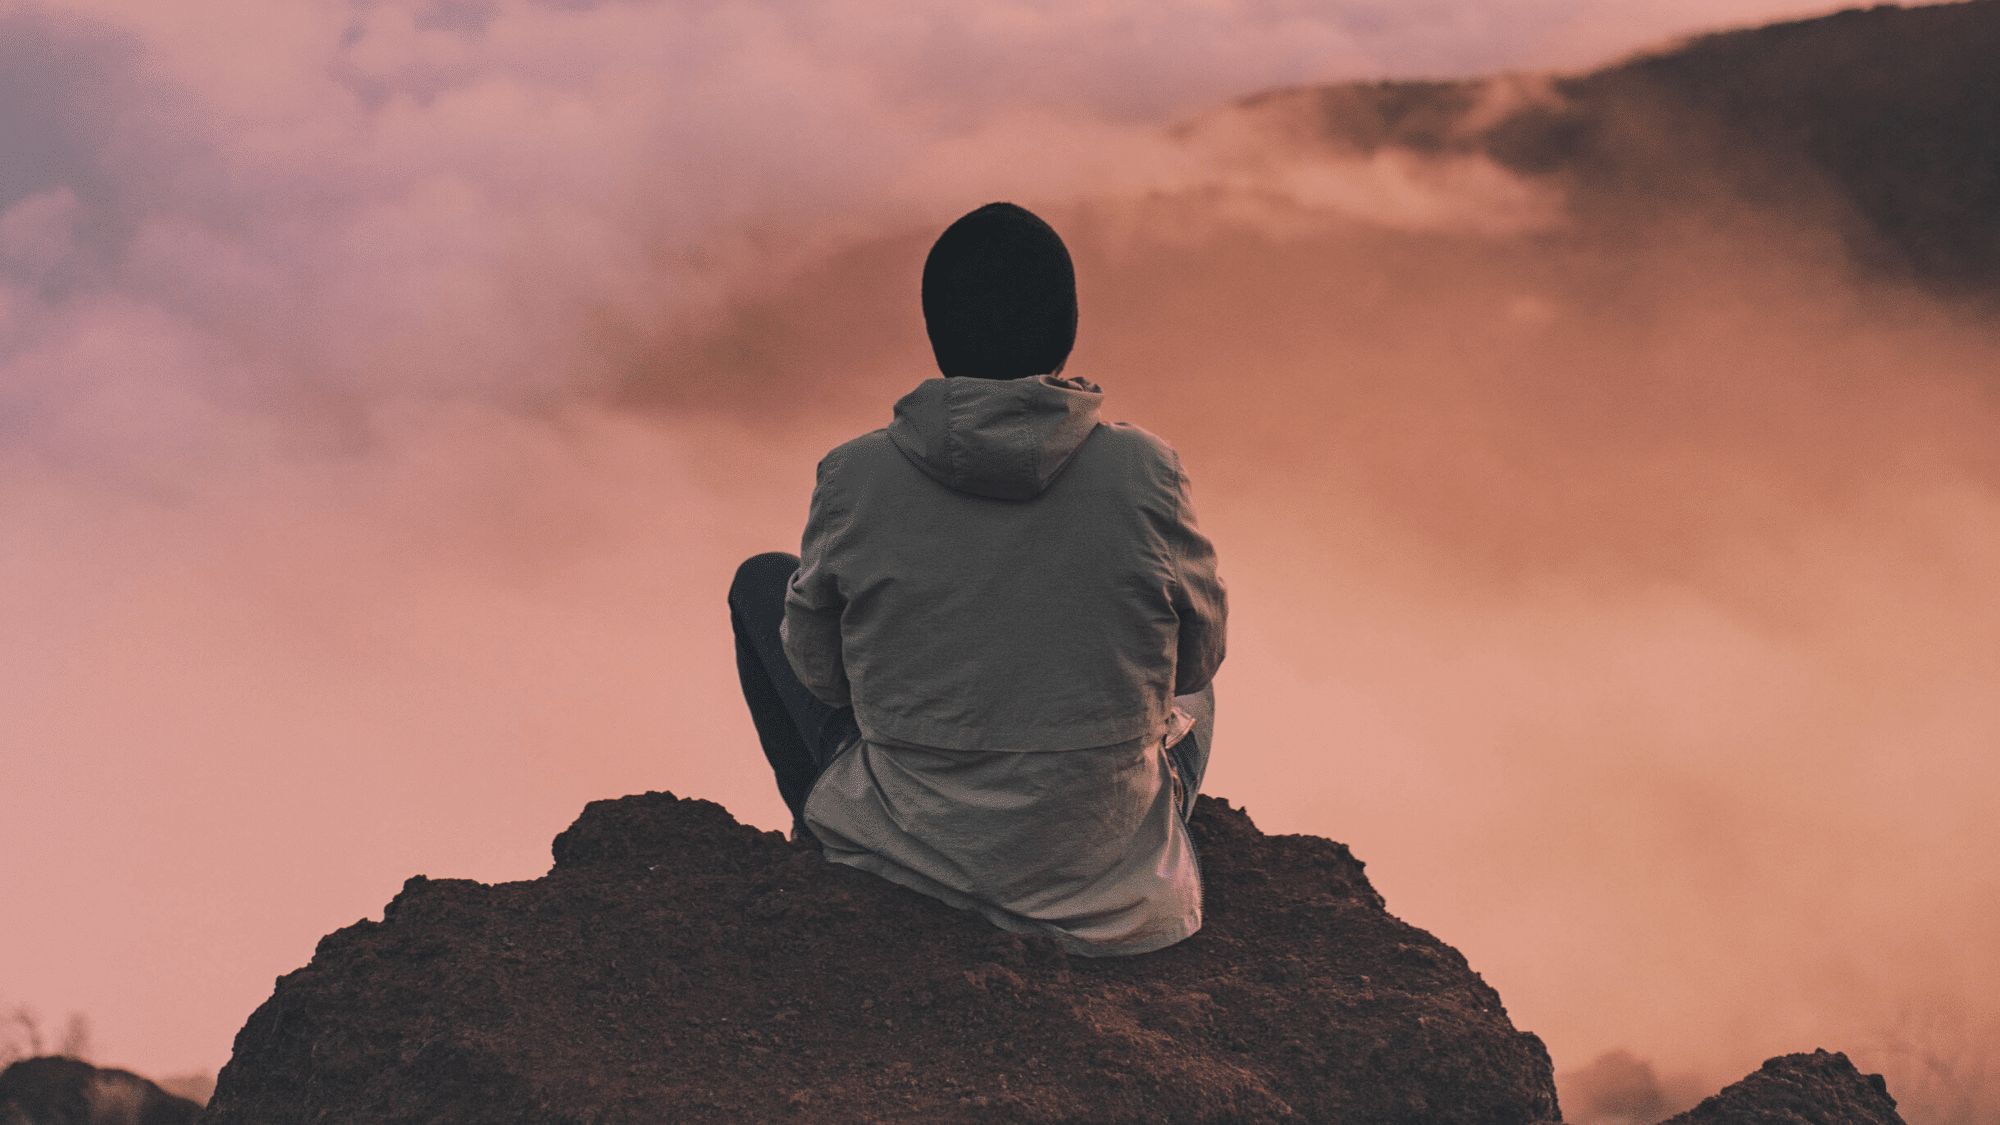 A man meditating on a mountain